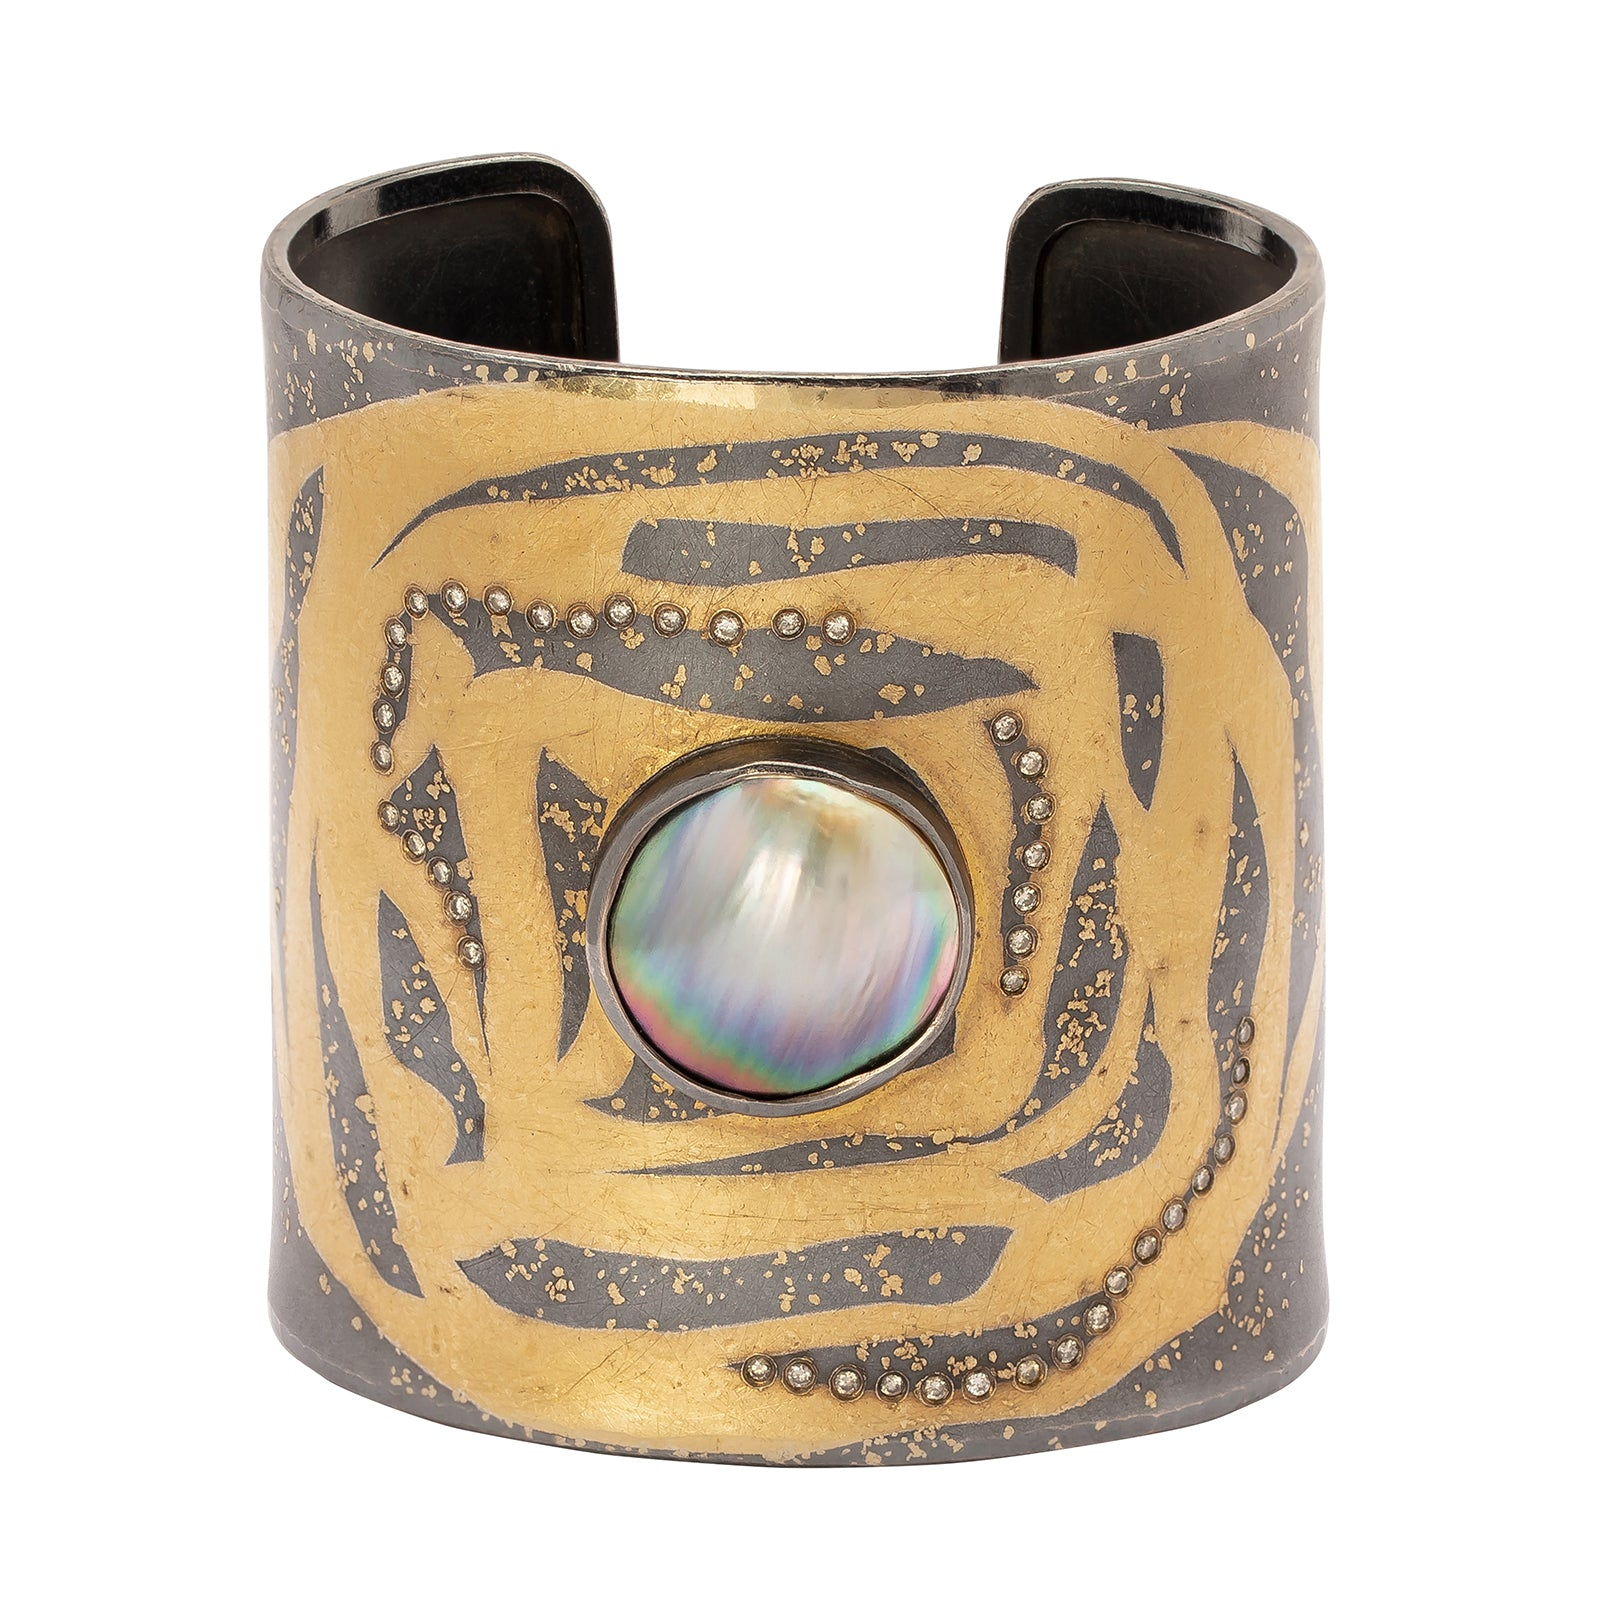 Atelier Zobel Statement Cuff - Pearl & Diamond - Bracelets - Broken English Jewelry